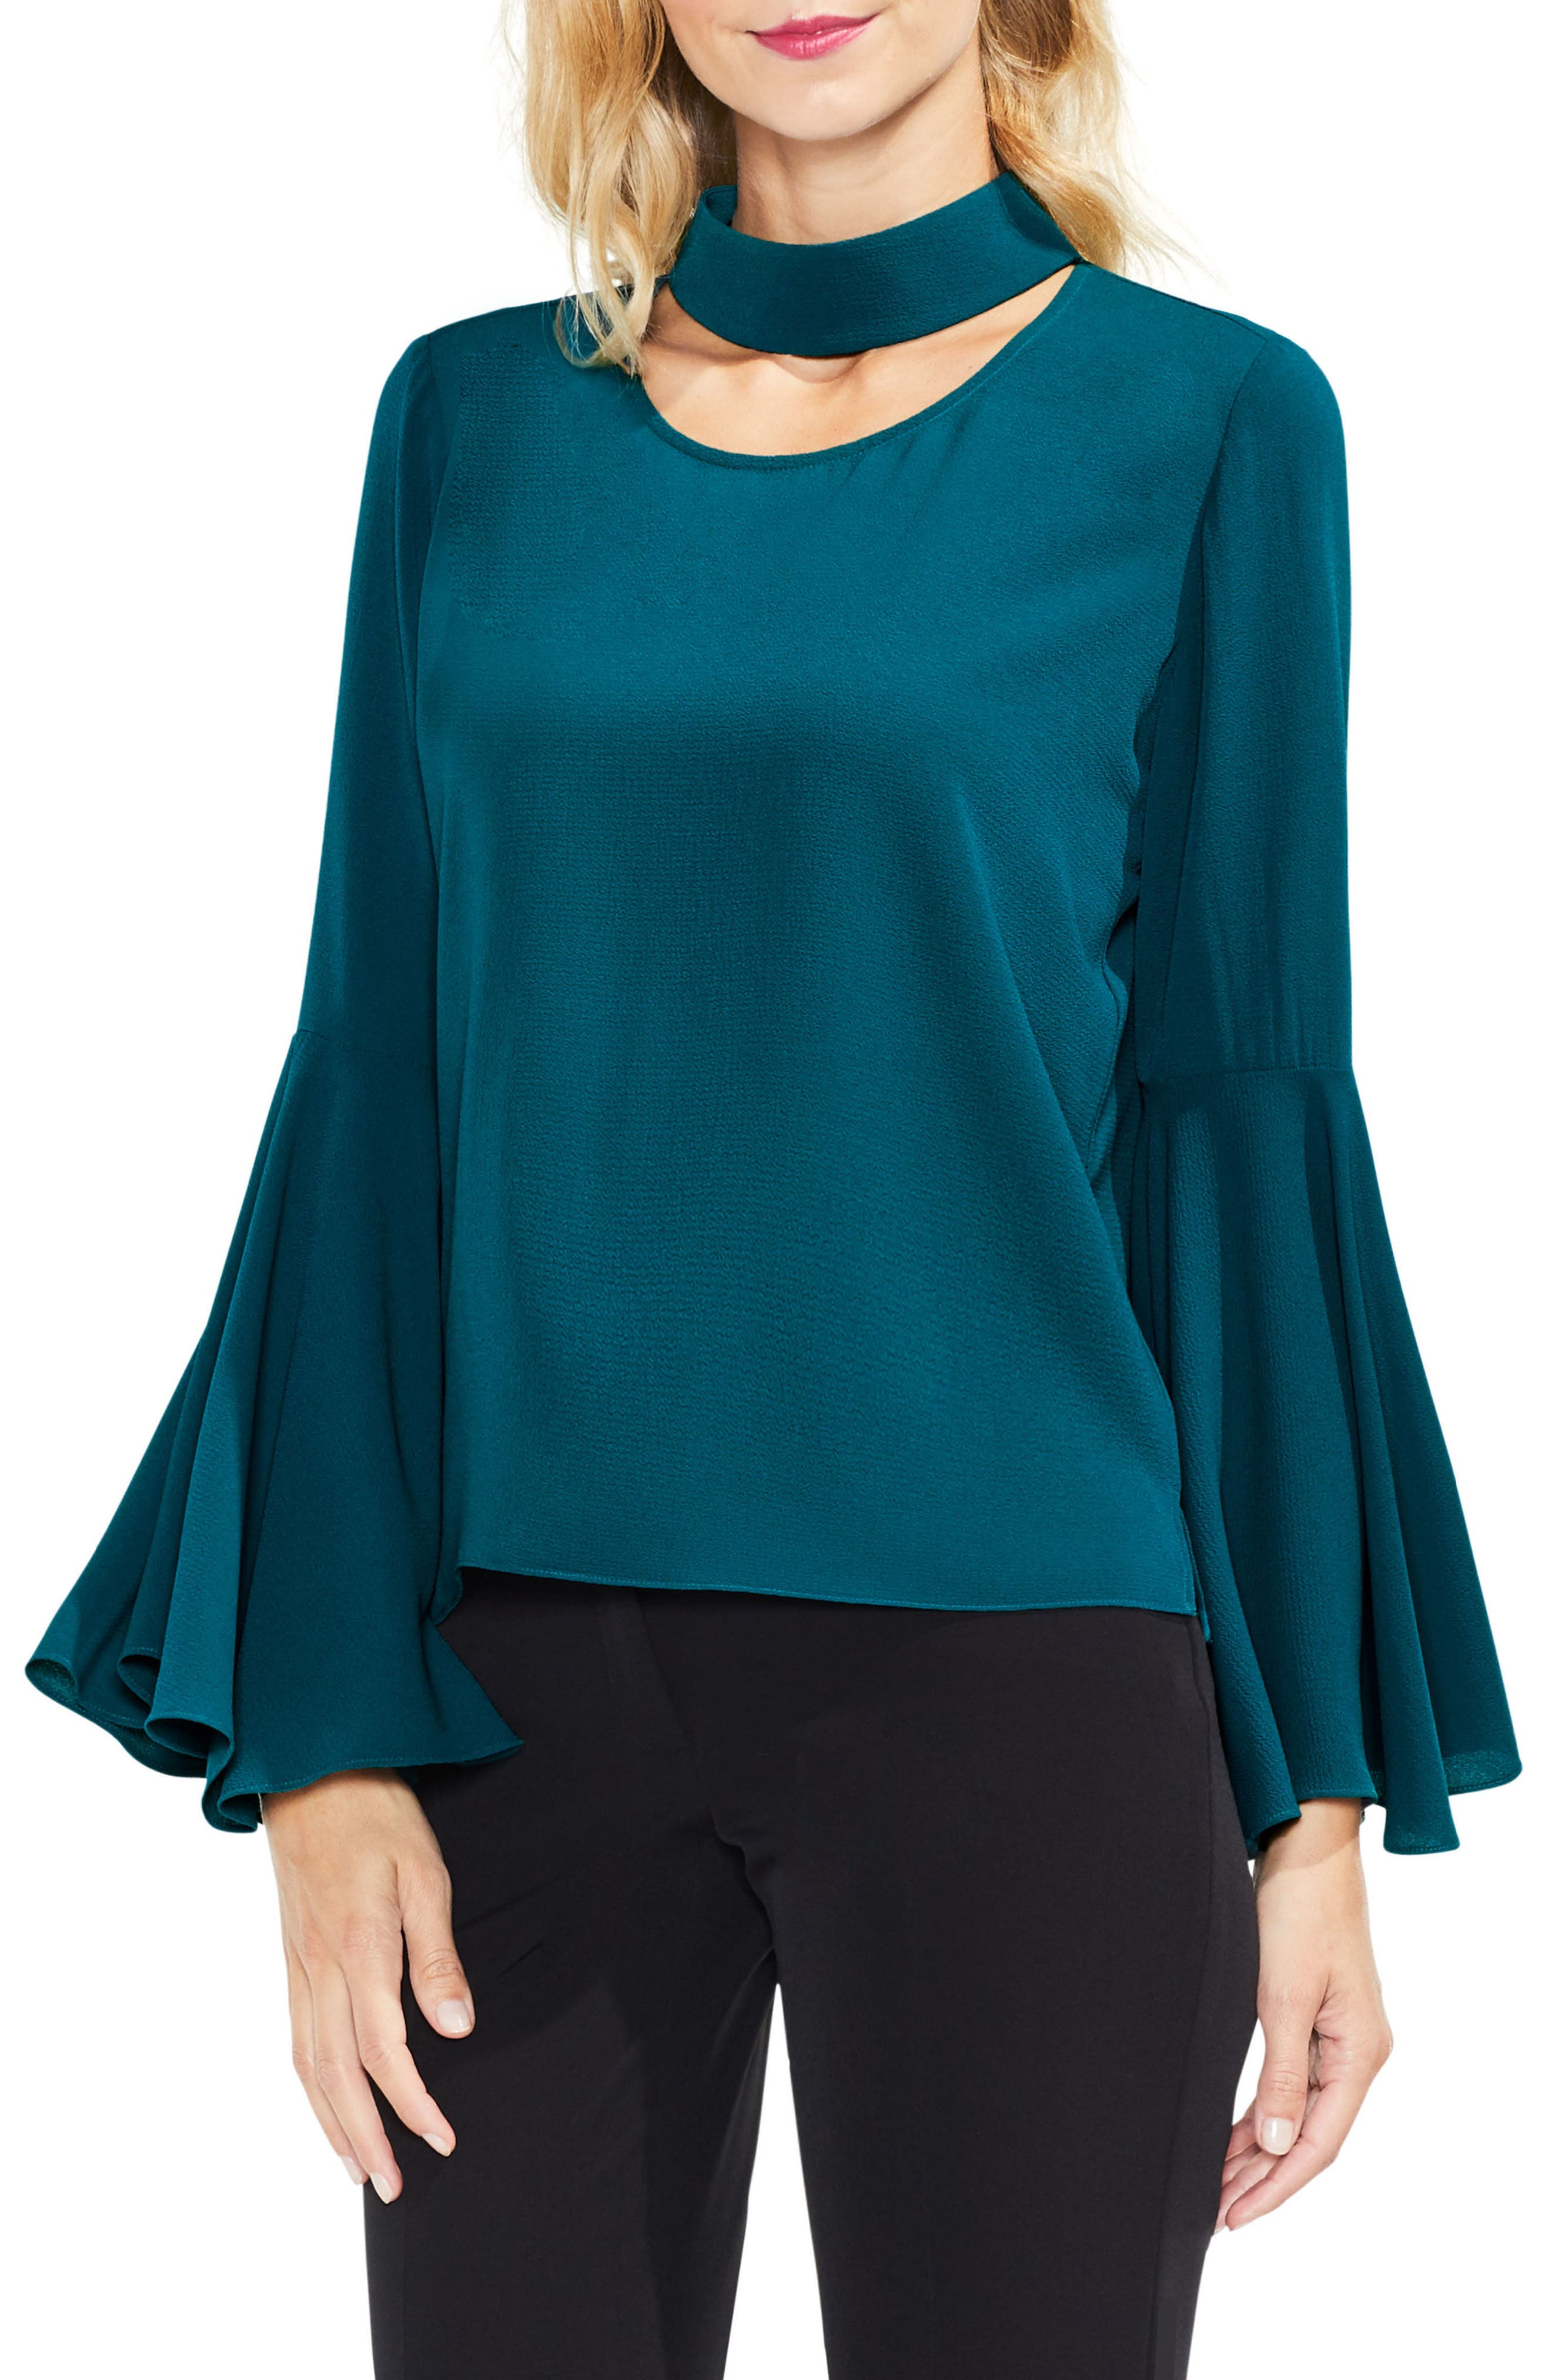 Bell Sleeve Choker Neck Blouse,                         Main,                         color, Dark Peacock